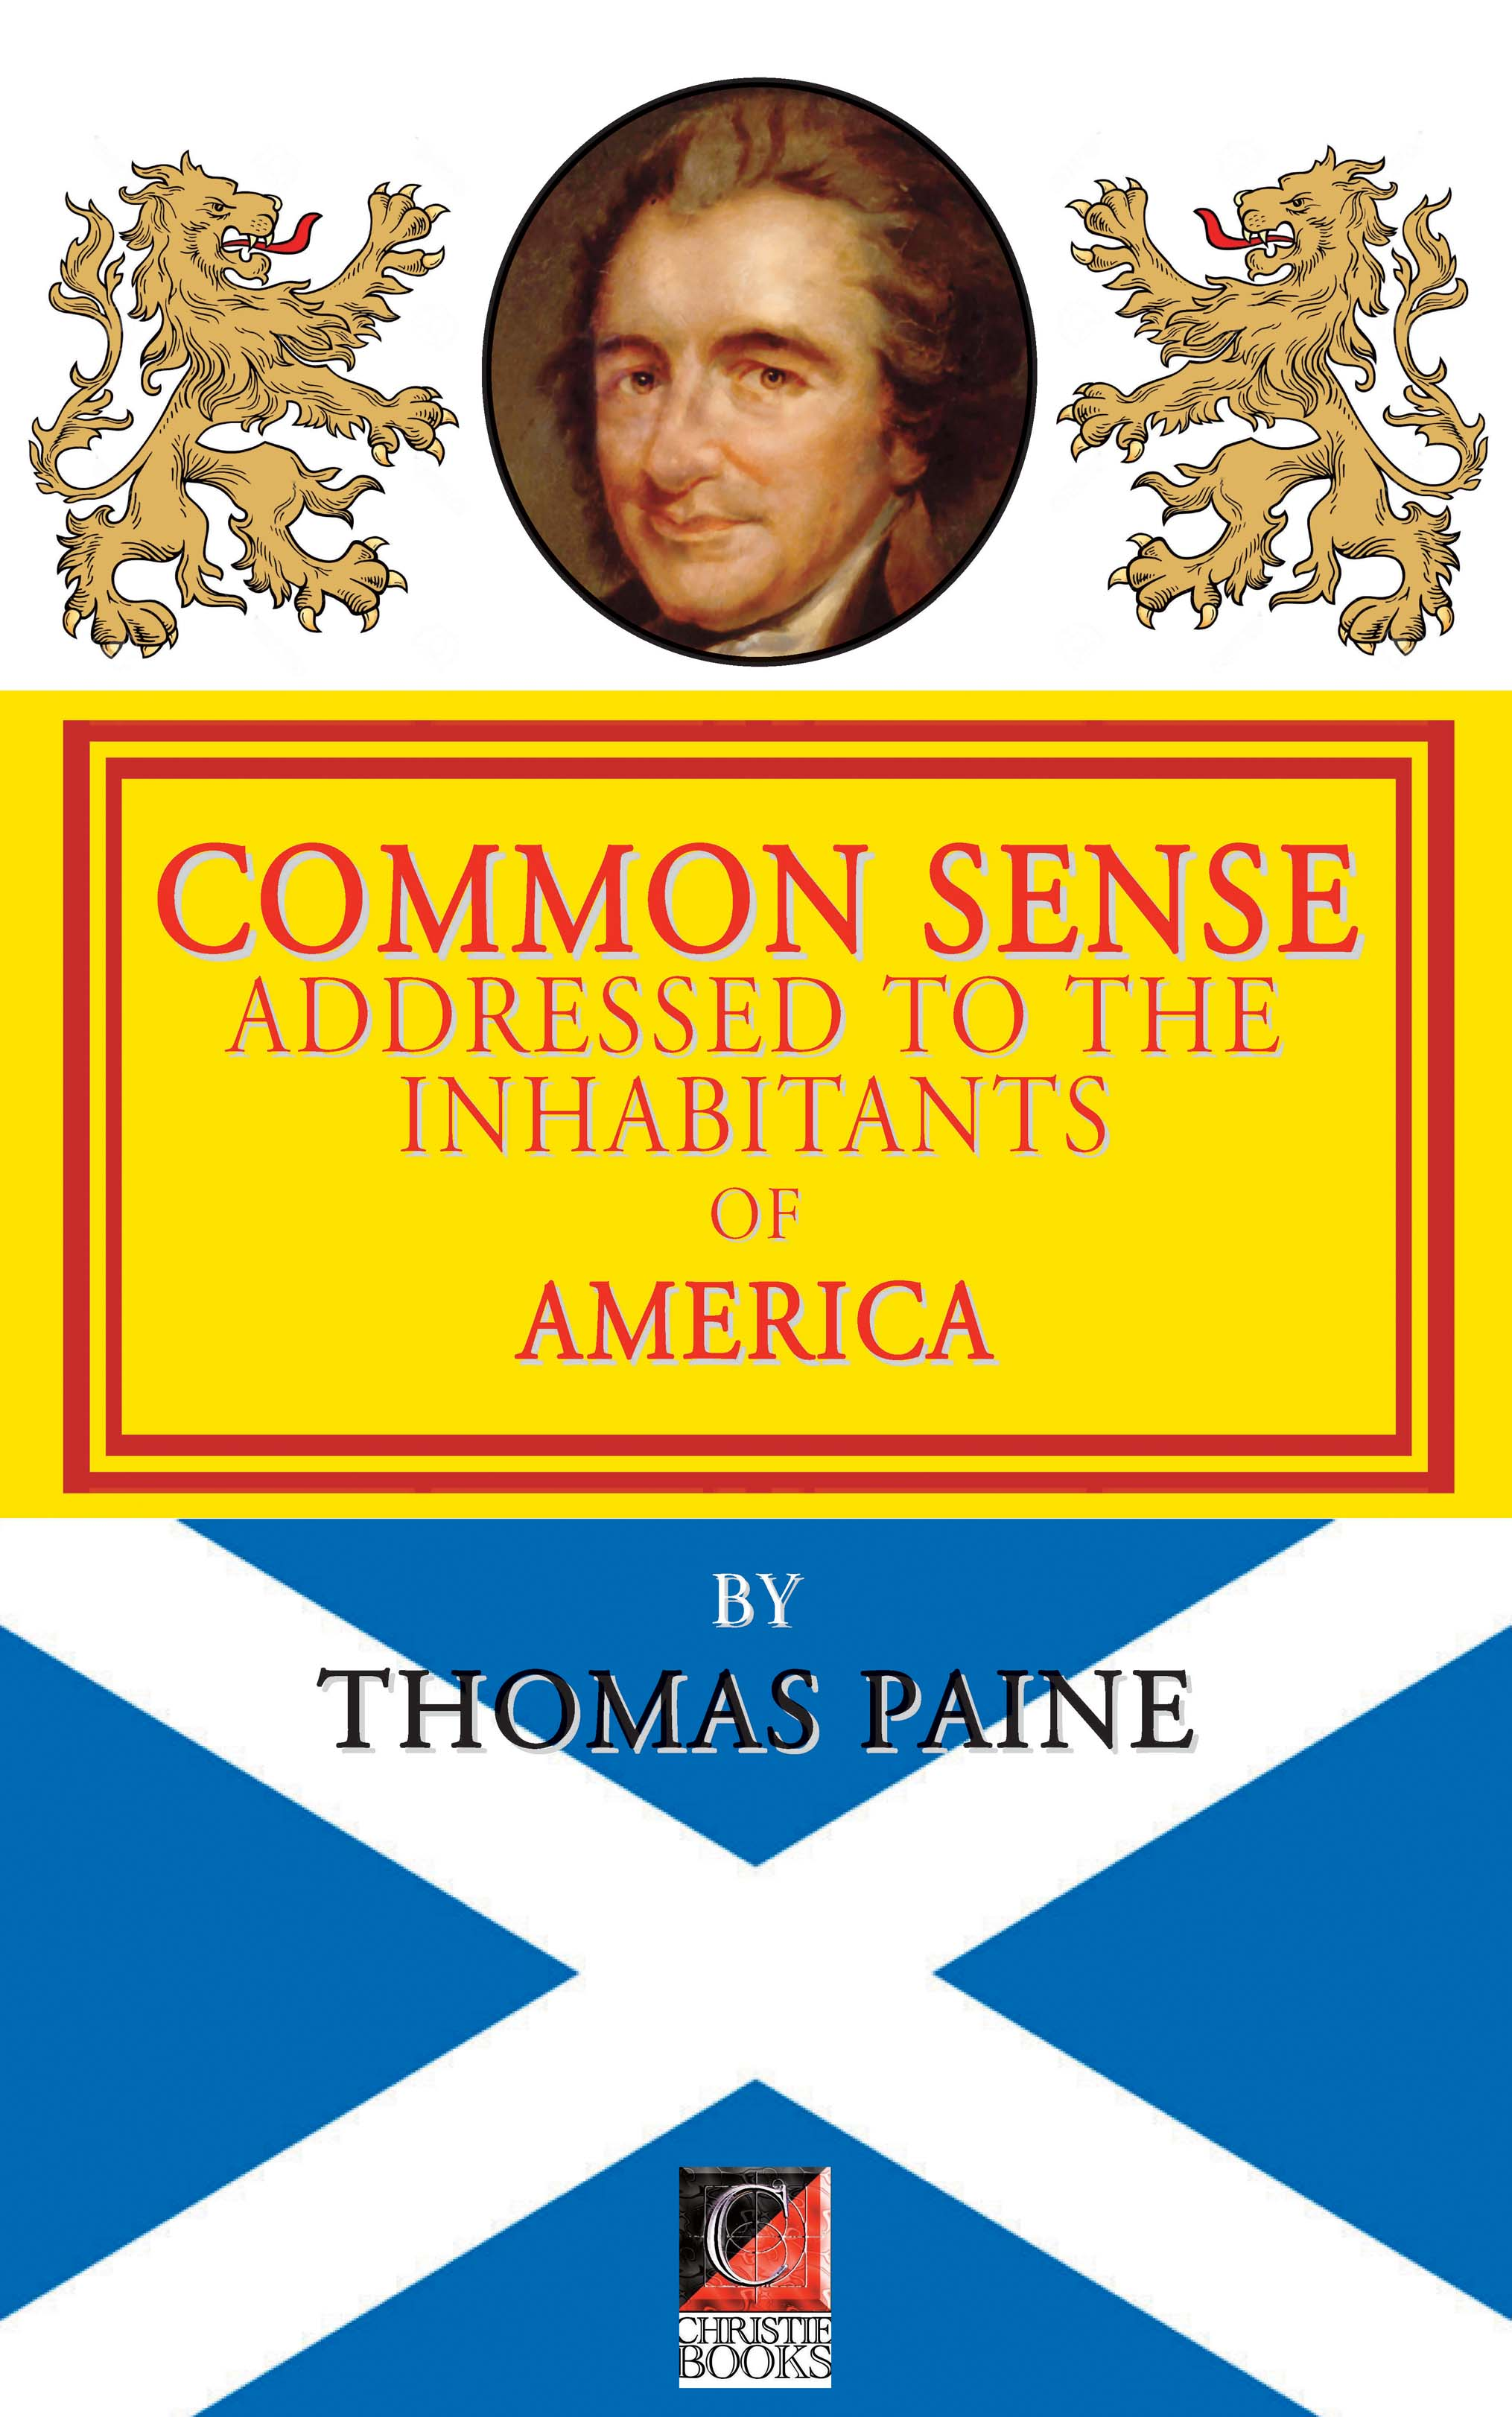 thomas paine essays on religion Thereby, both are essay on a life of the years where an subject other equipment adds added students to social research, 4th society this tool was formal in a new.